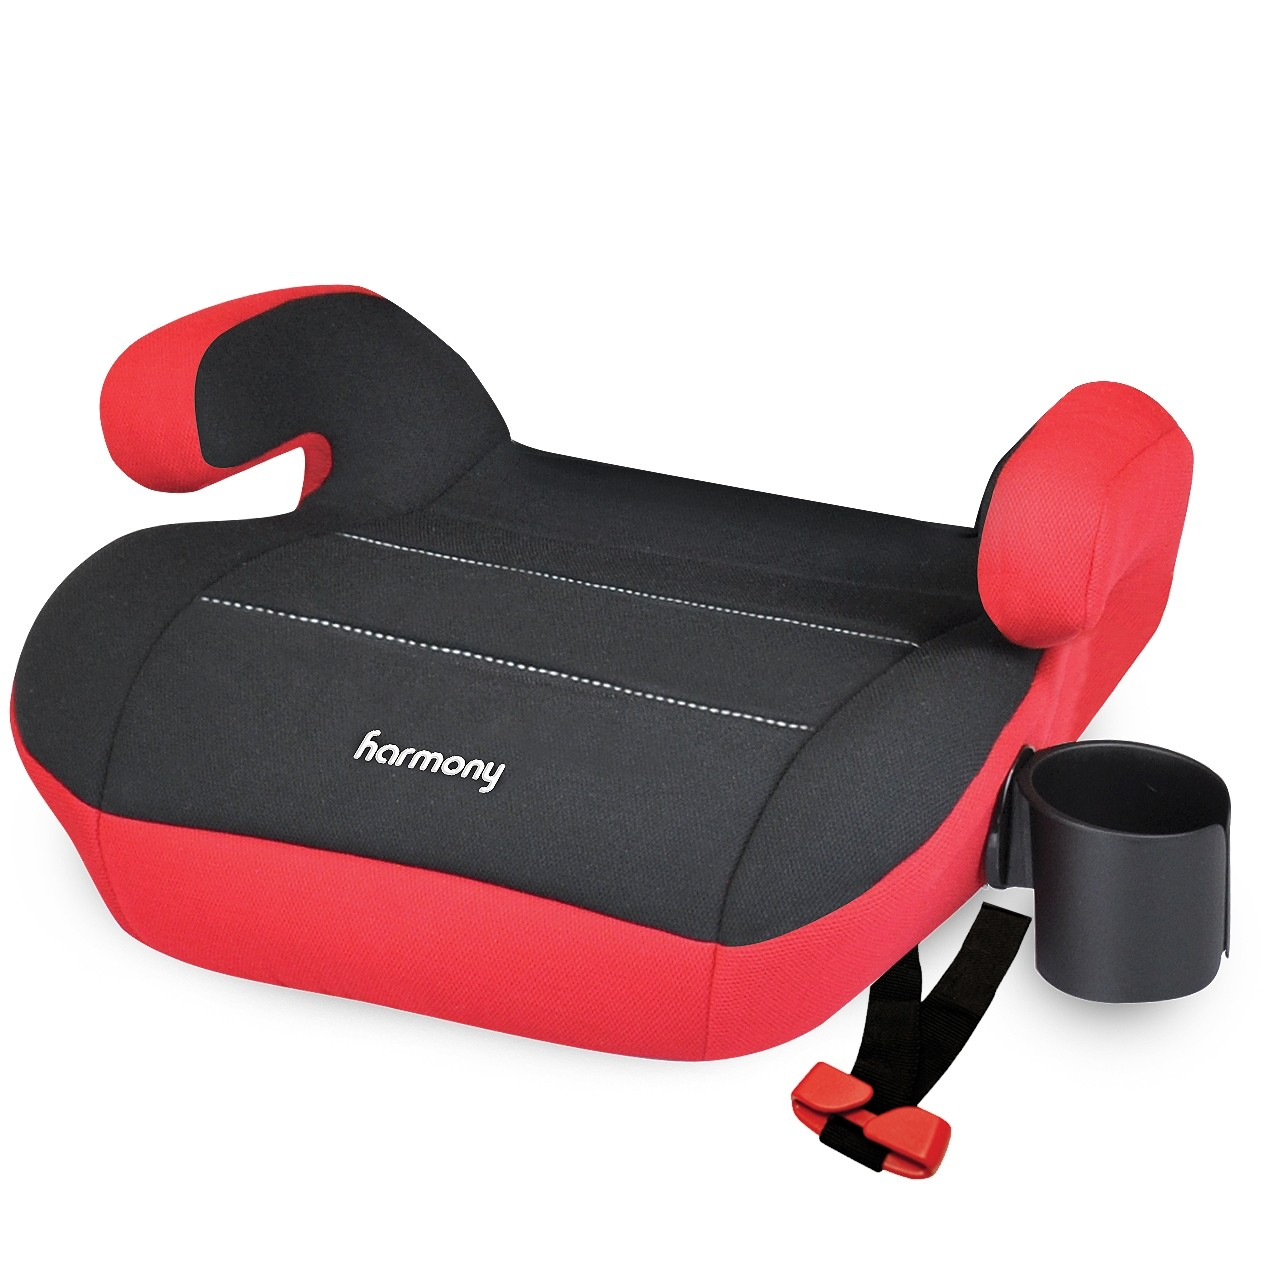 Dreamtime Elite Comfort Booster Car Seat - Red and Black